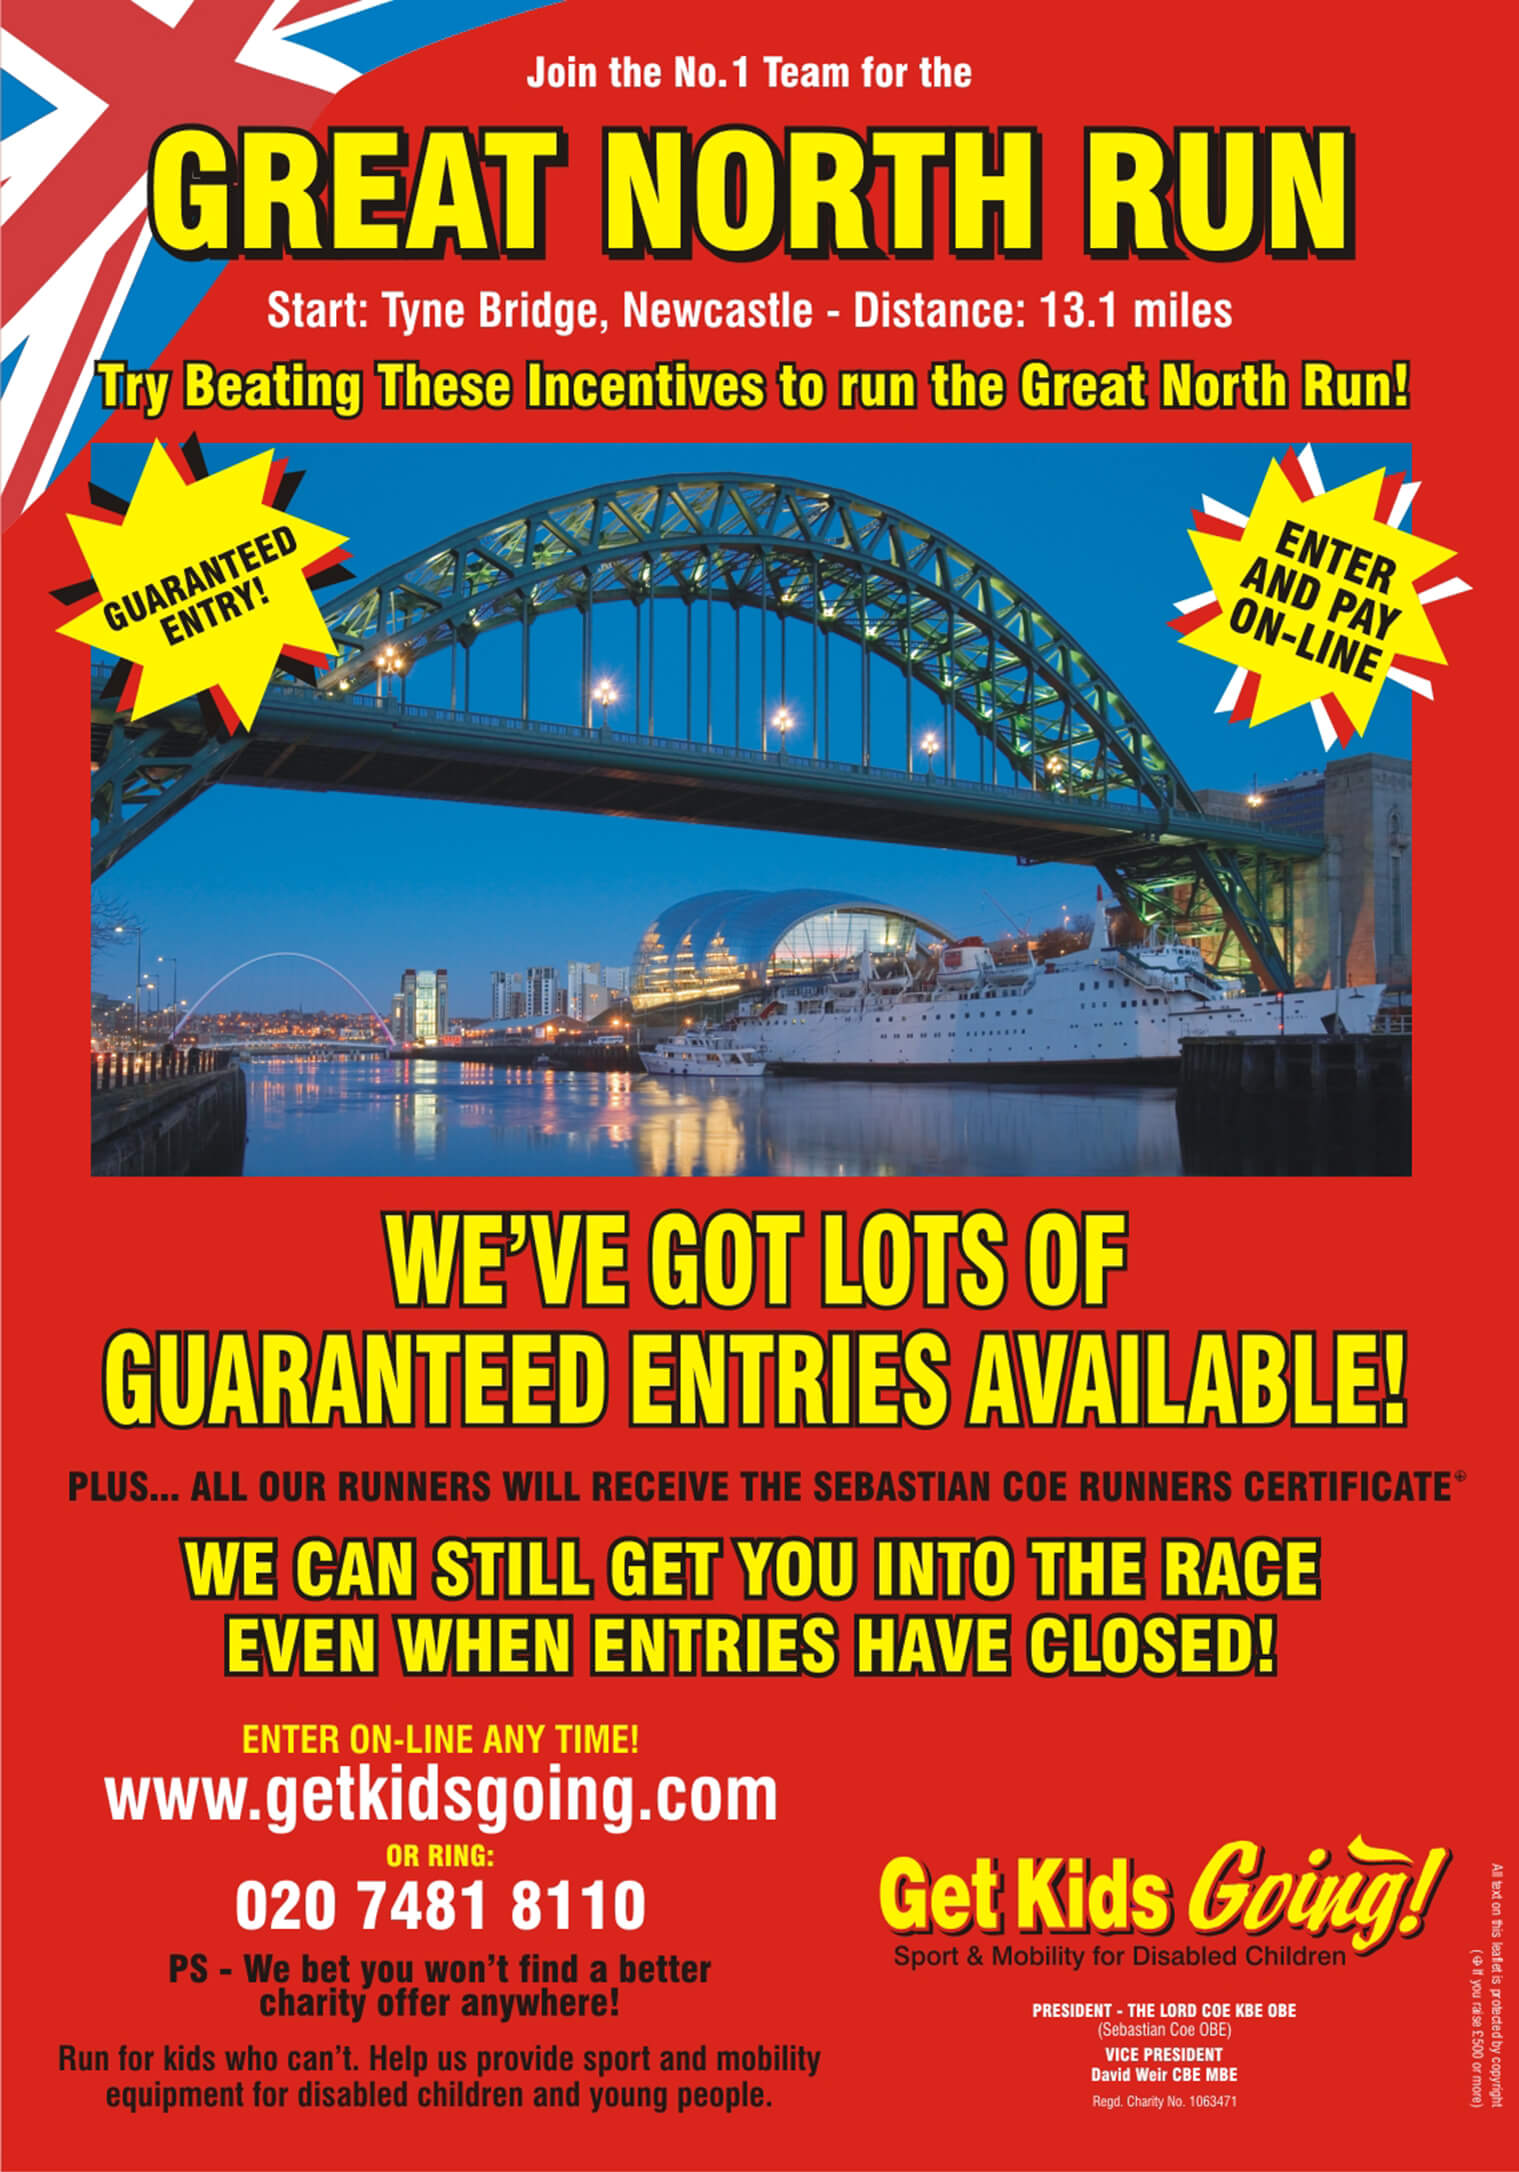 We have hundreds of guaranteed entry places available for the BUPA Great North Run 2011 just waiting to be filled! Get Kids Going! is a unique, national charity that gives disabled children and young people the wonderful opportunity of participating in sport. Help us to Turn their Dreams Into Reality